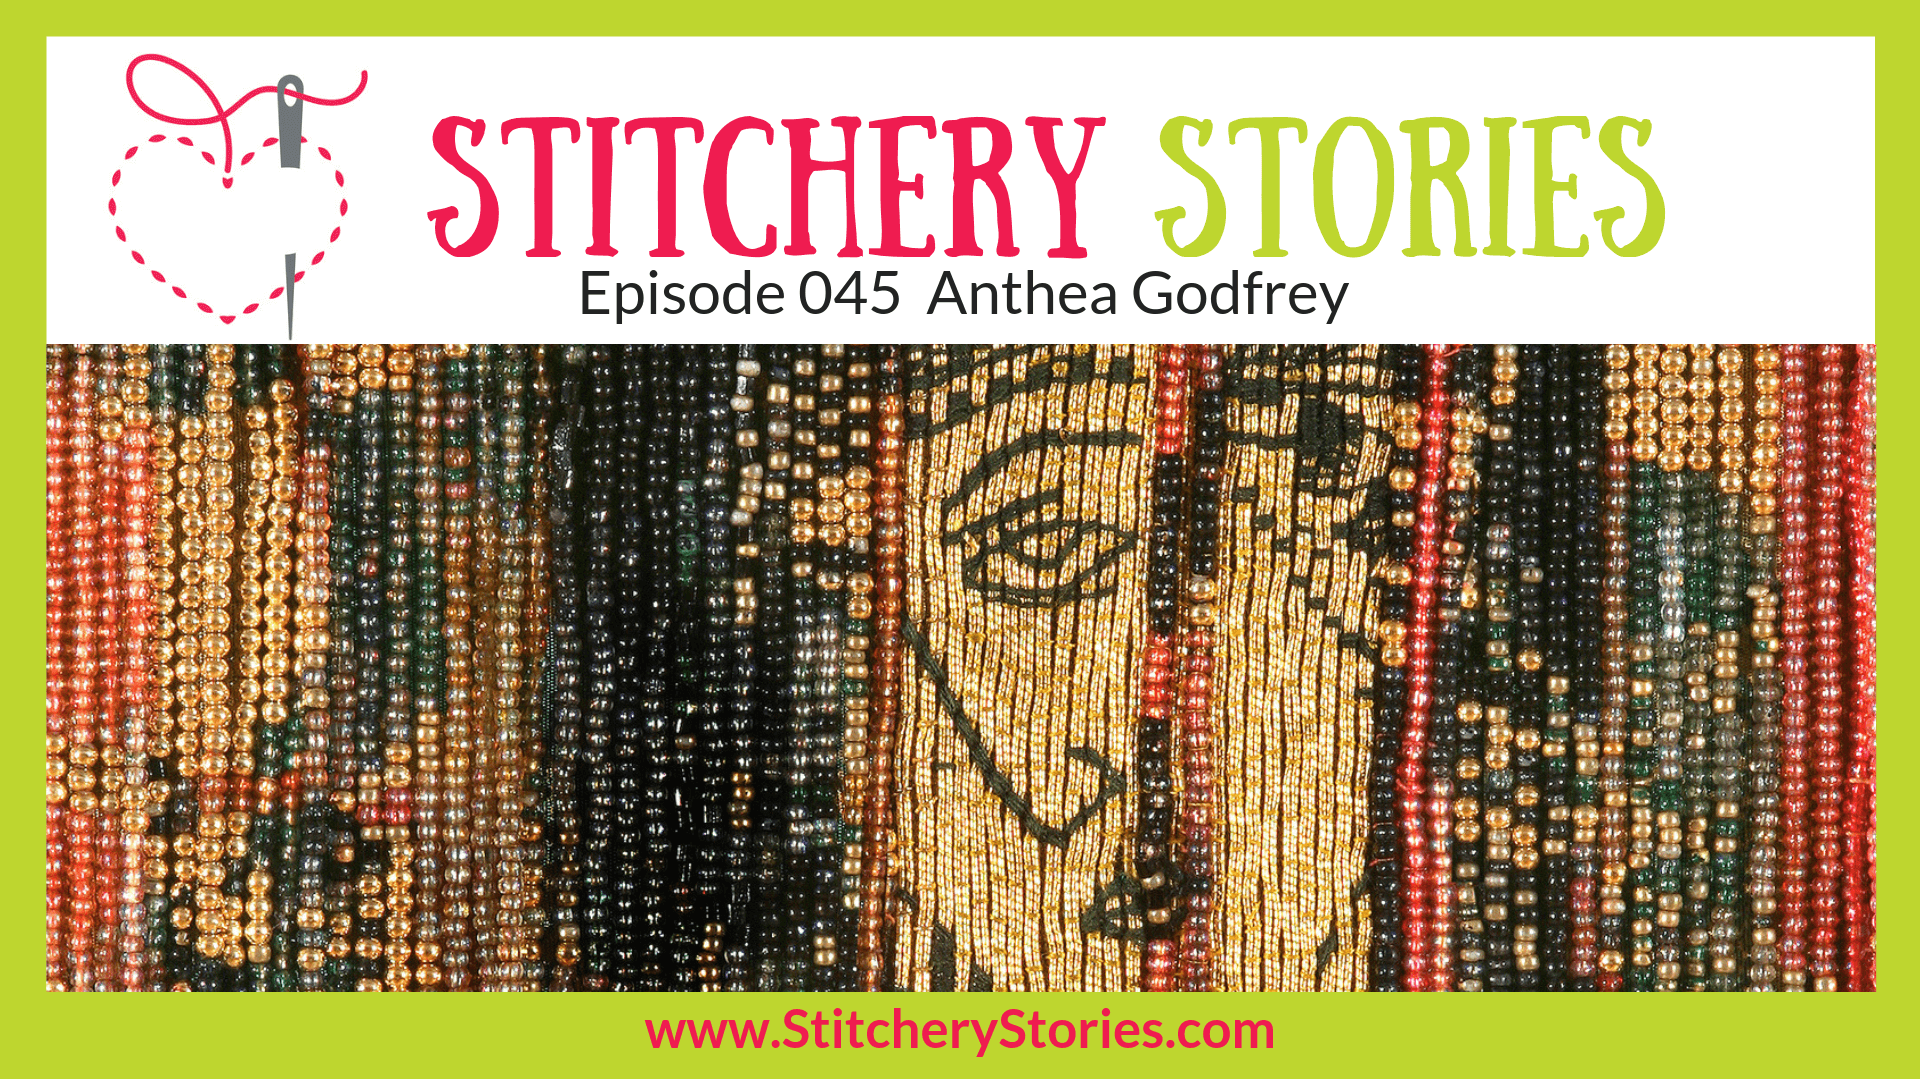 Anthea Godfrey Textile Artist Stitchery Stories Textile Art Podcast Wide Art